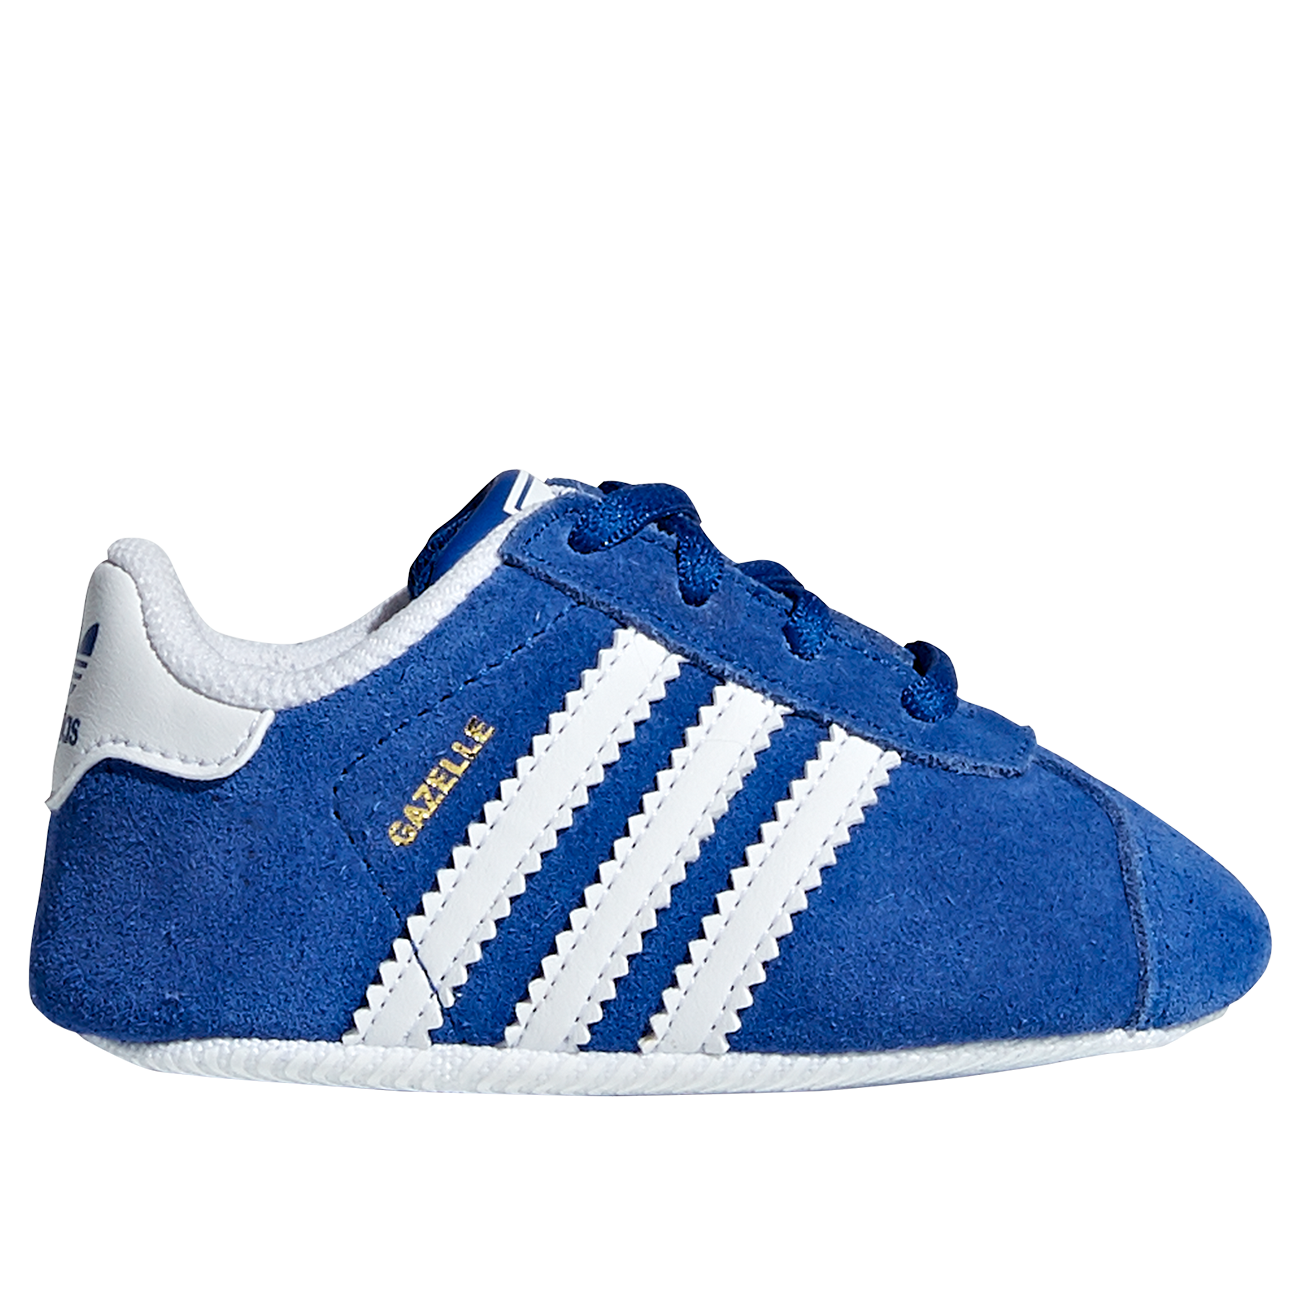 1e5900f26d0 adidas Gazelle Crib Baby Sneakers Collegiate Navy White. adidas-haven- sneakers-sko-blaa-blue-white-hvid ...